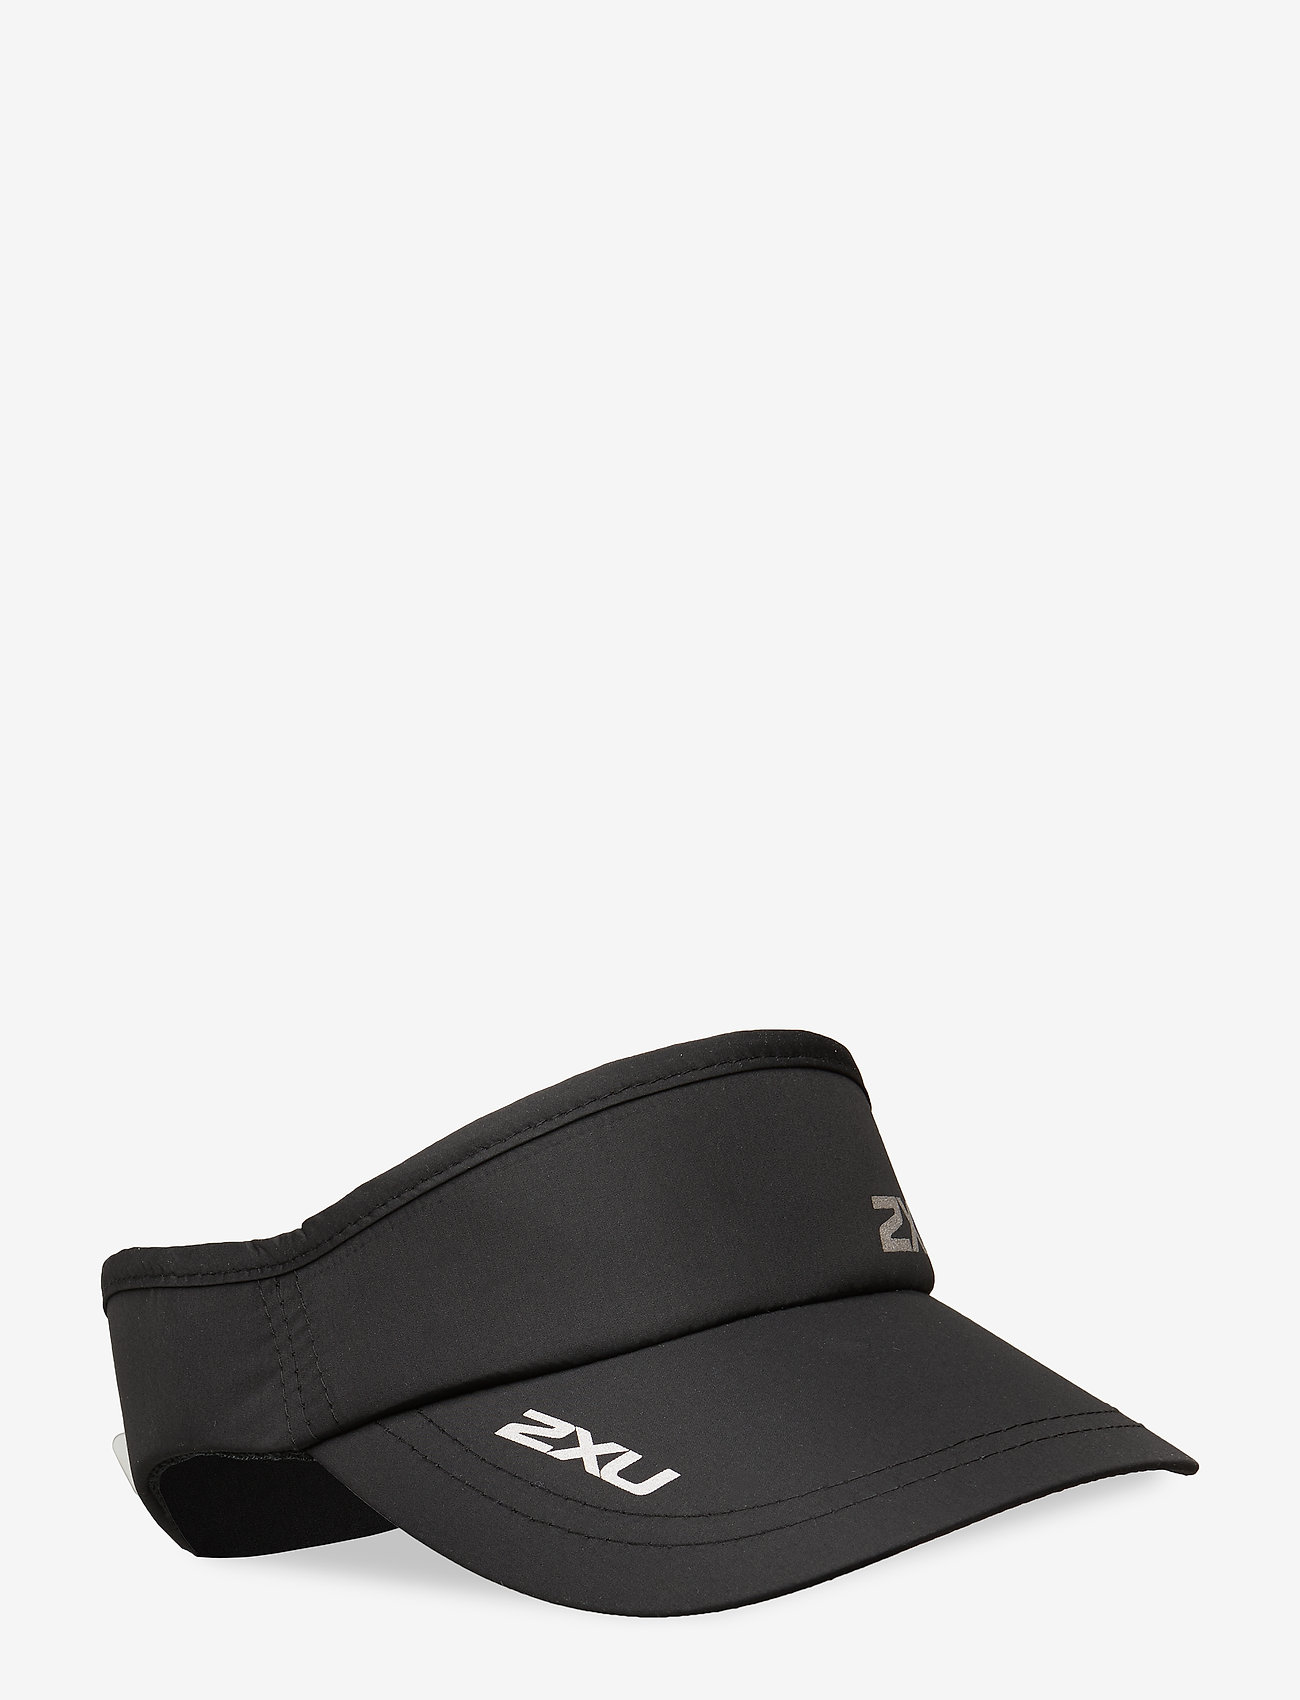 2XU - RUN VISOR - kasketter - black/black - 0